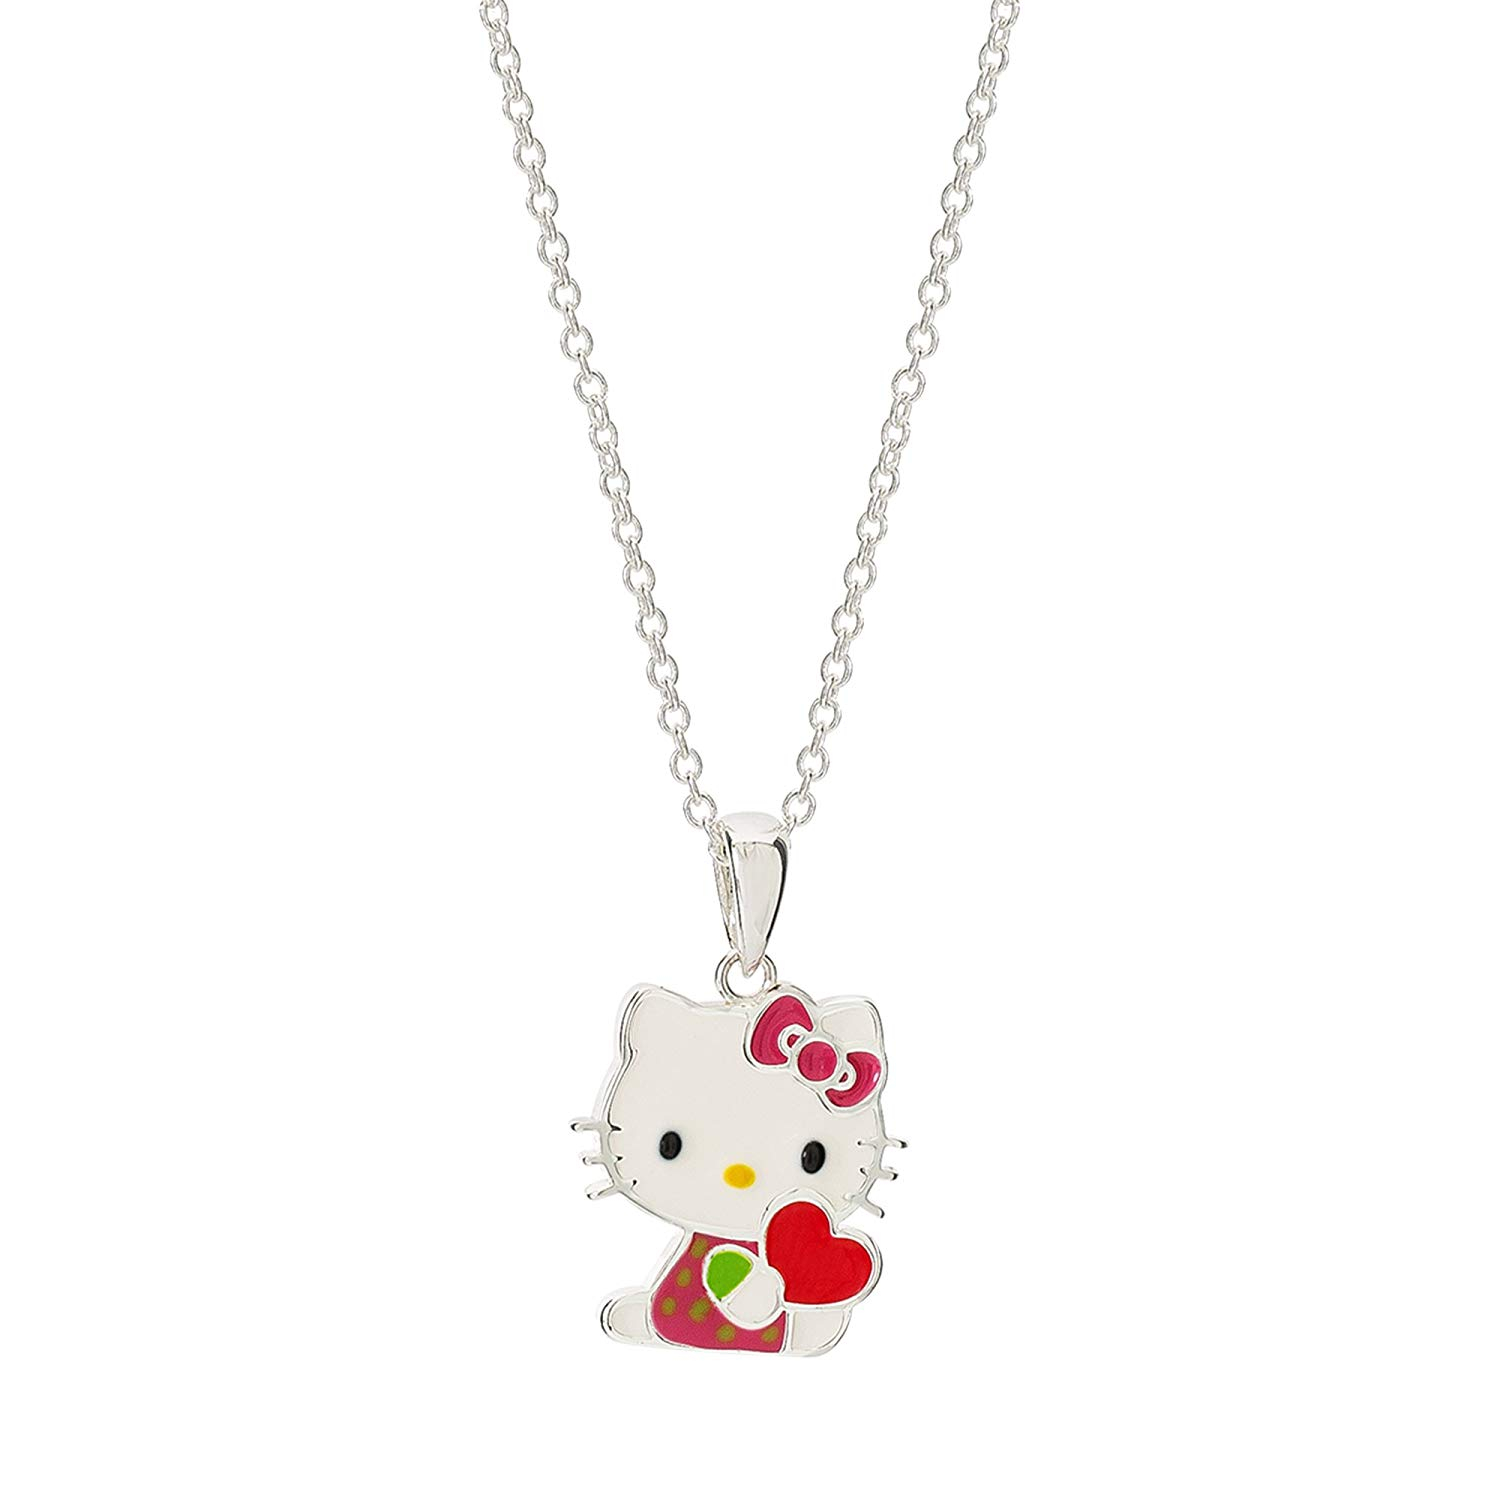 854fa275d Get Quotations · Hello Kitty Silver Plated Enamel Kitty with Heart Pendant  Necklace